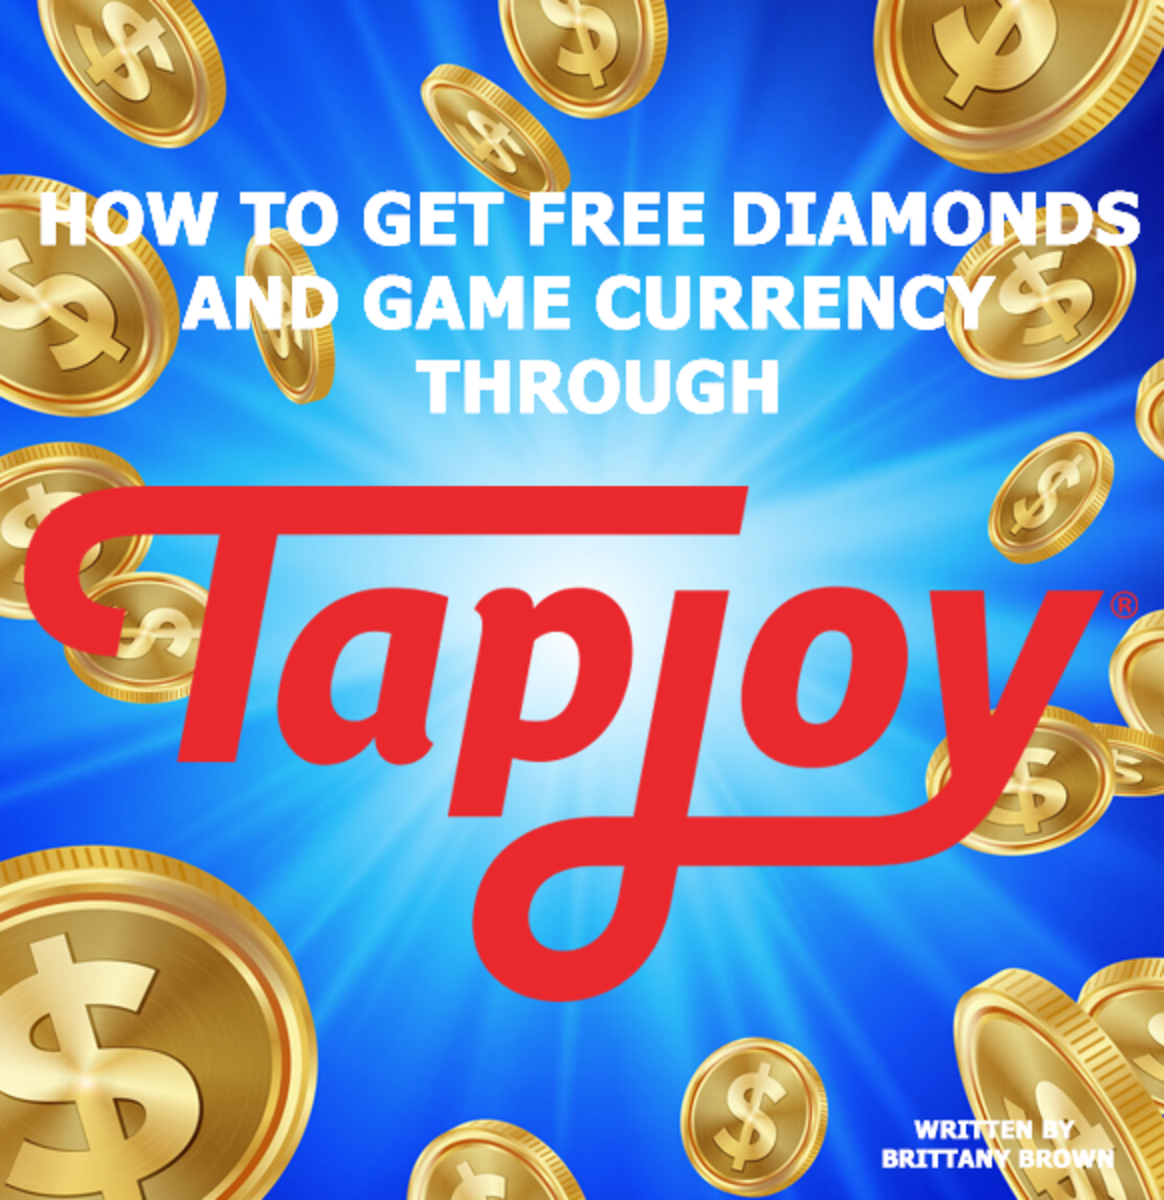 How to Get Free Diamonds and Game Currency With TapJoy Offers